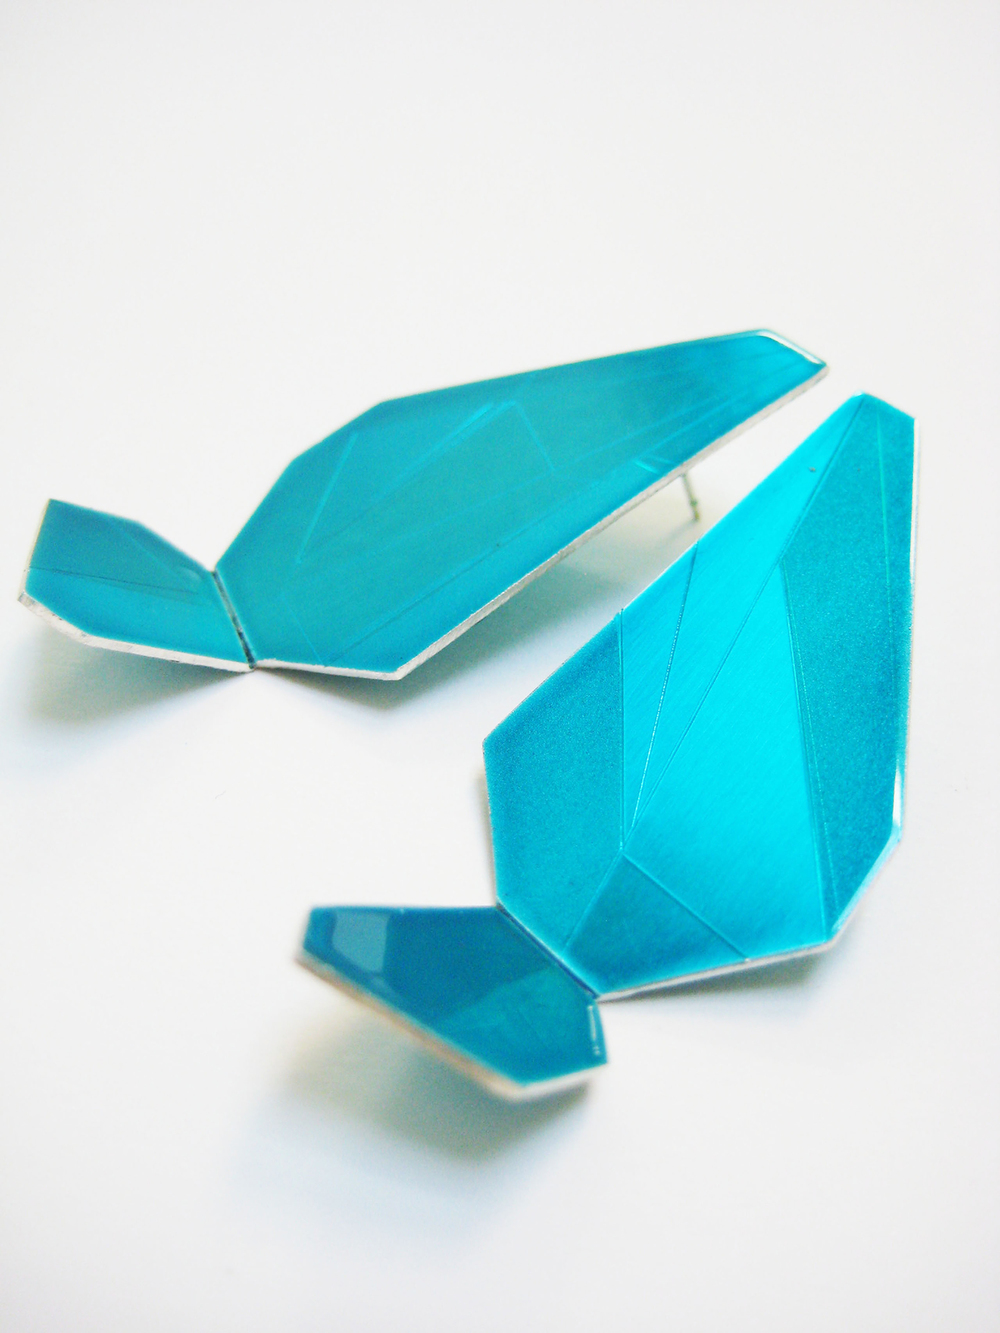 1-Large Teal Ear Gems- Voegele.jpg